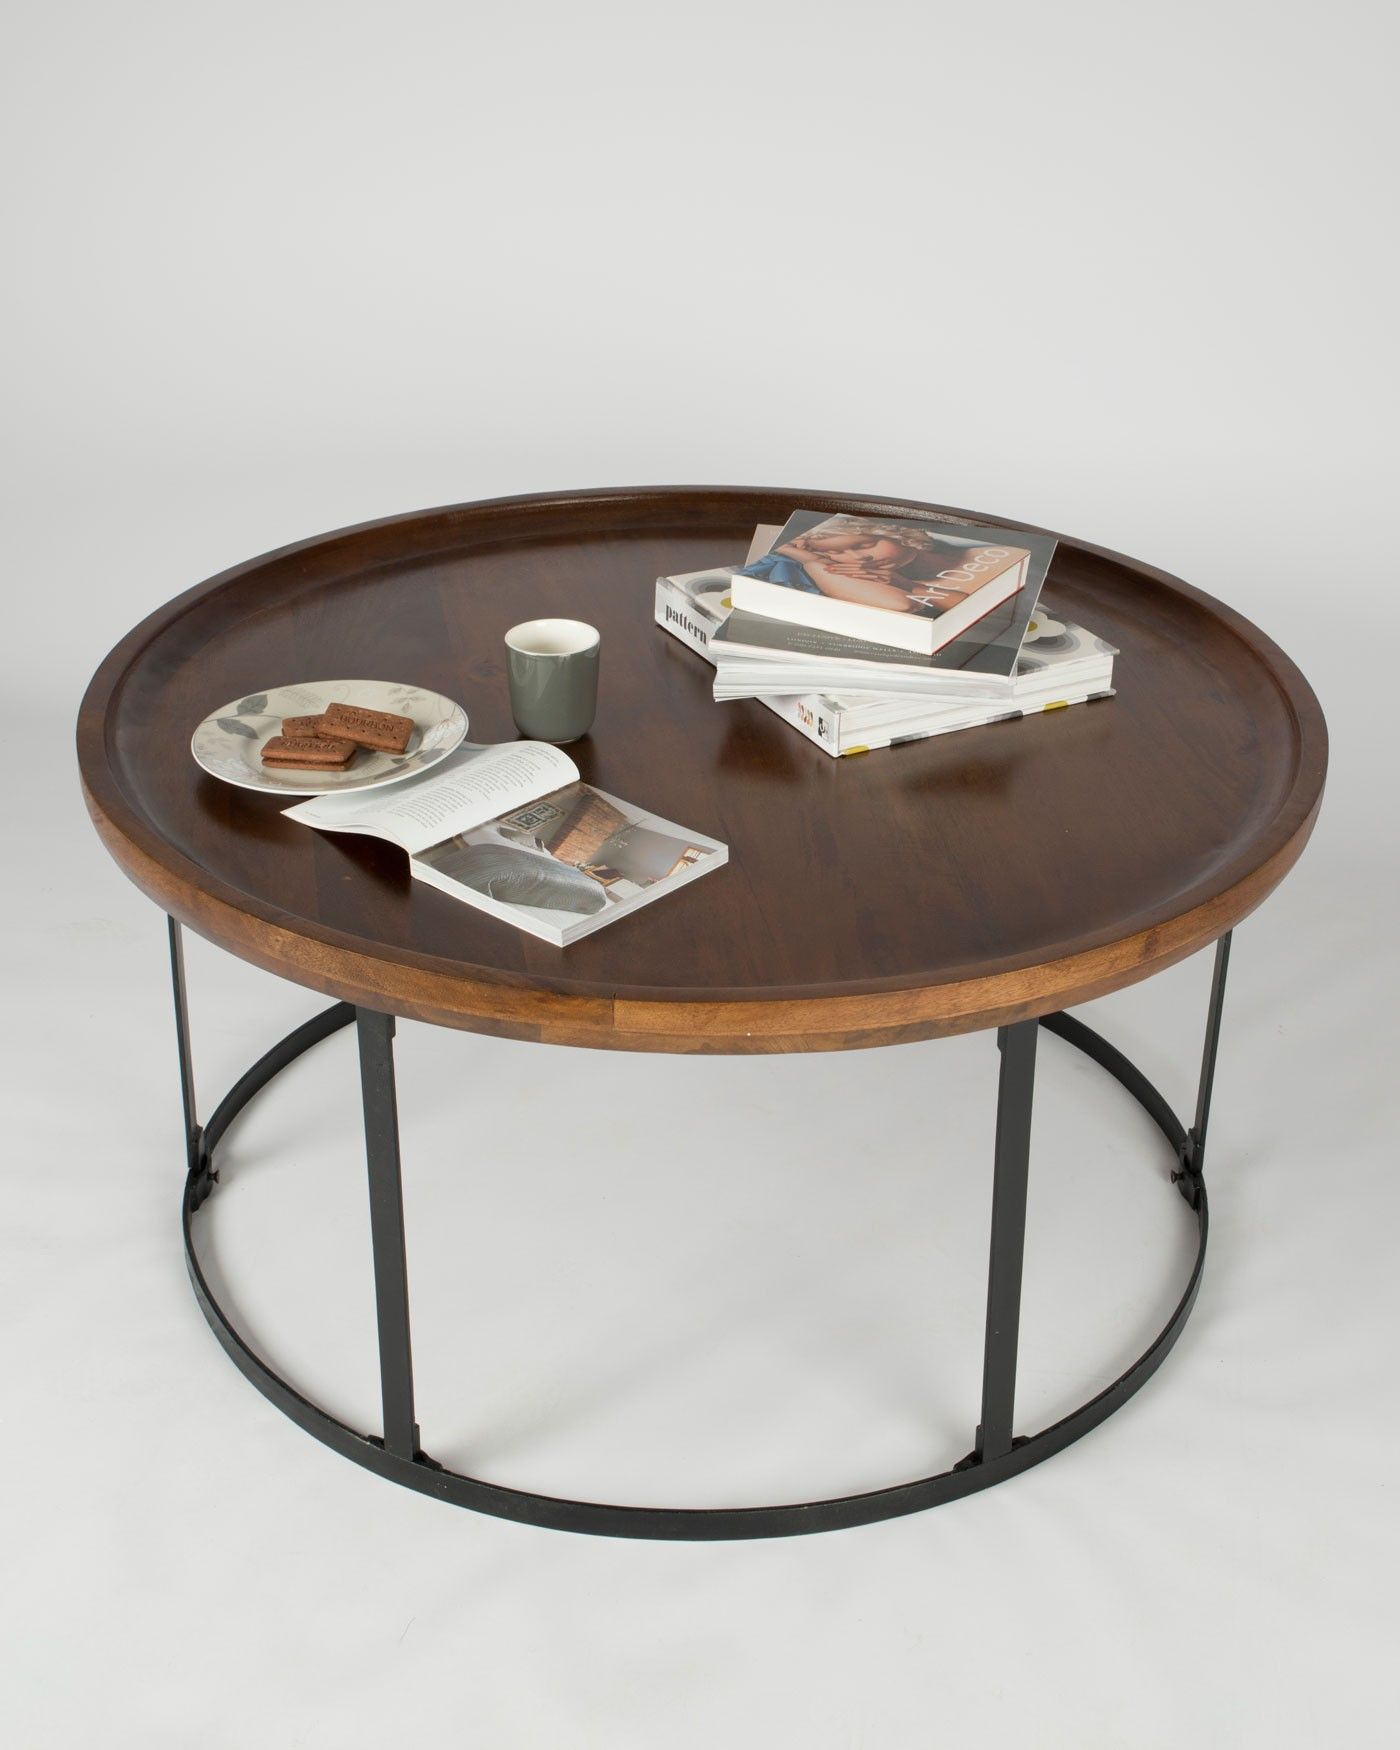 Industrial Round Coffee Table With Dark Wood Top And Steel Frame Minimalist Coffee Table Round Wood Coffee Table Dark Wood Coffee Table [ 1750 x 1400 Pixel ]